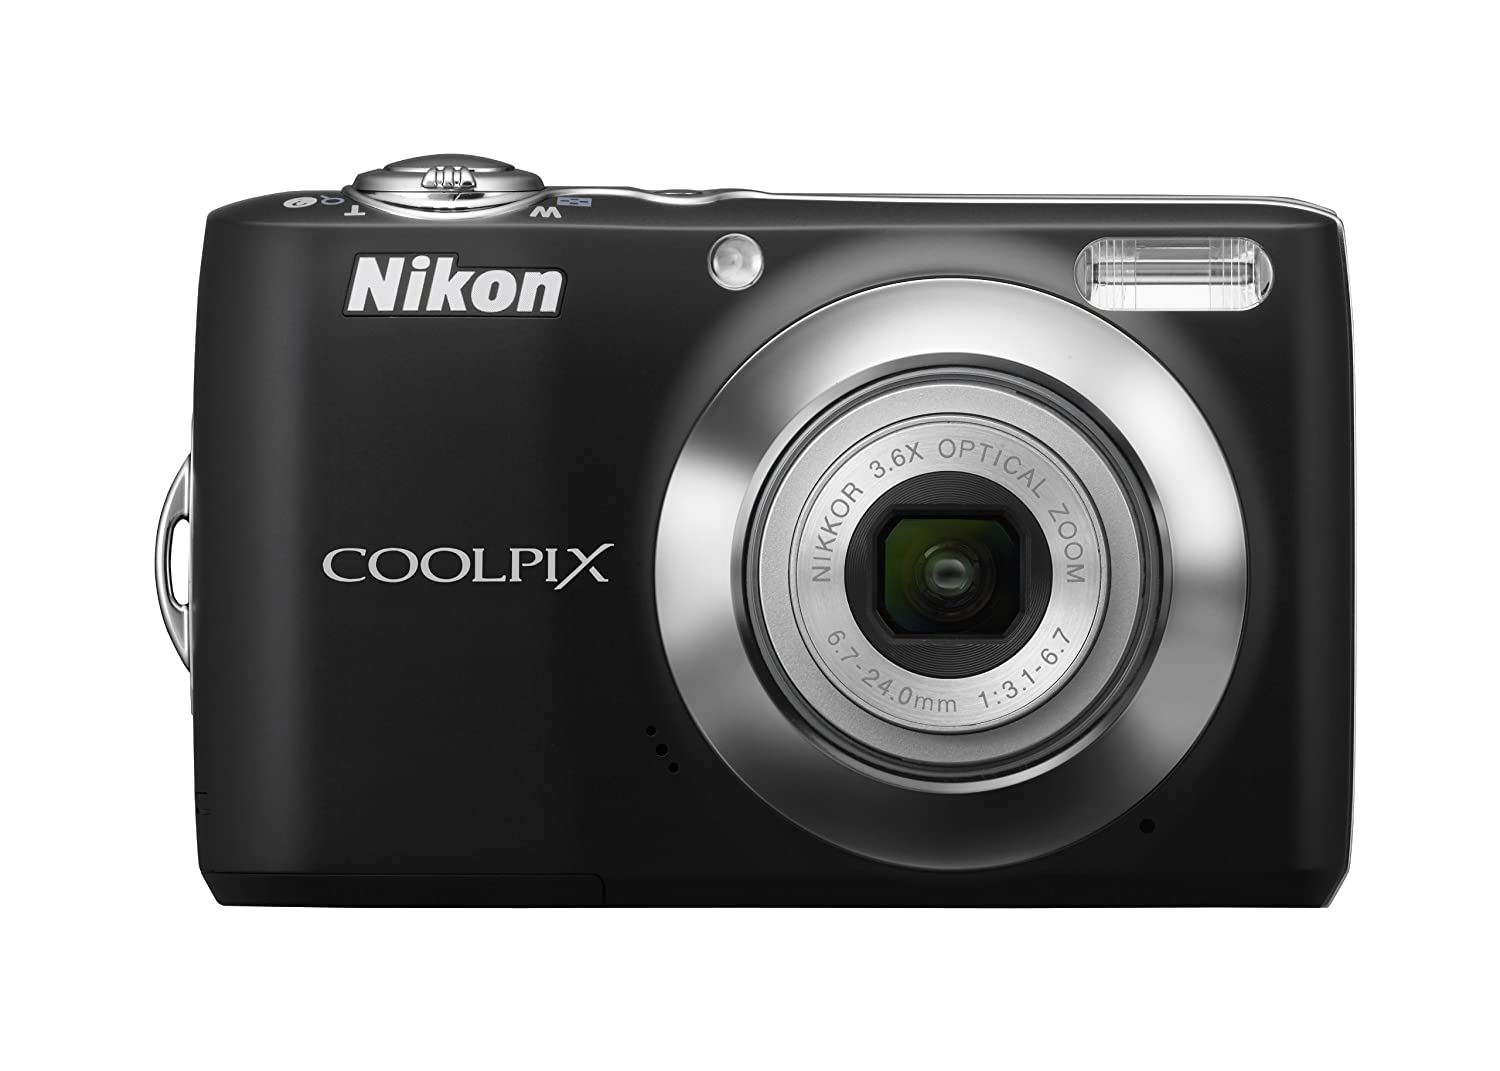 nikon coolpix l22 manual focus expert user guide u2022 rh manualguidestudio today Nikon Cool Pix L22 Nikon Coolpix L21